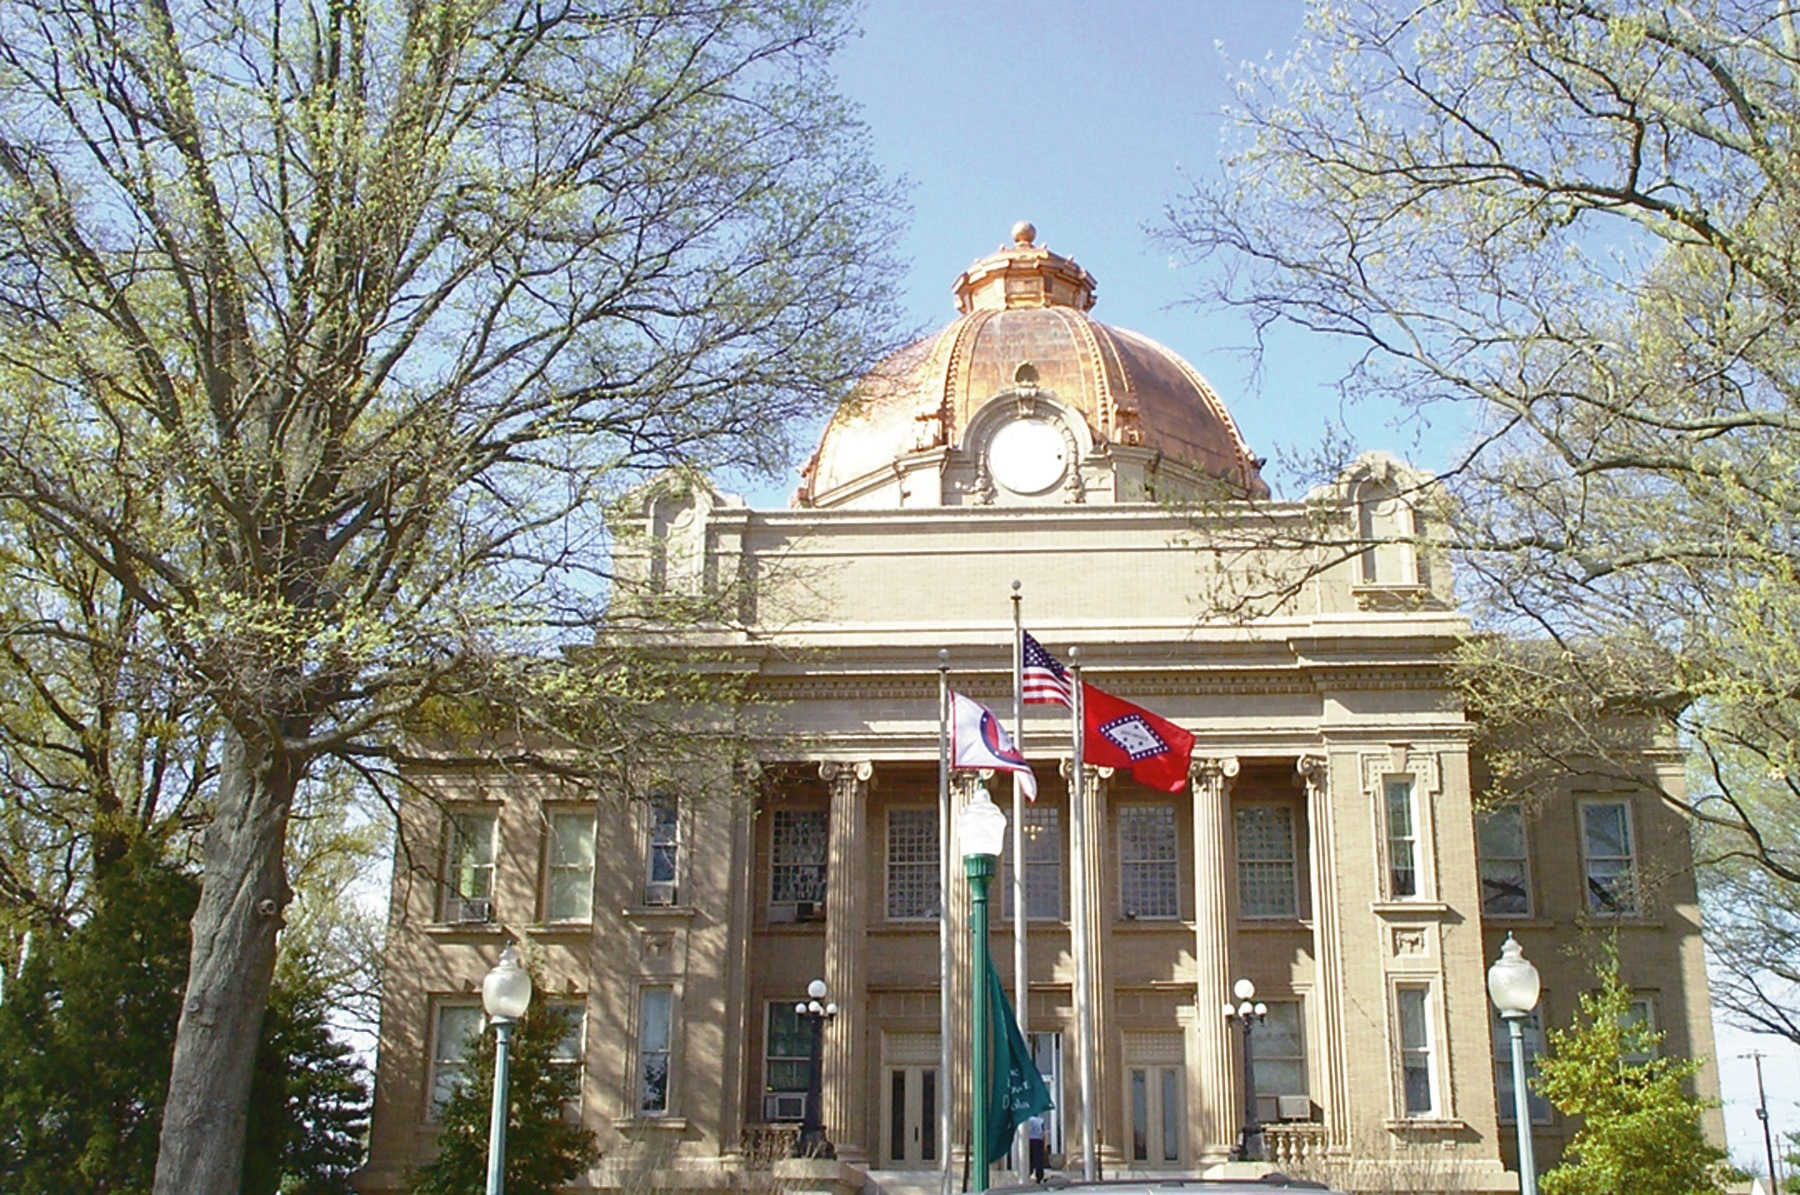 Osceola, one of two county seats in Mississippi County, Arkansas, features a beautiful 1912 Neo-Classical courthouse with a copper roofed dome.